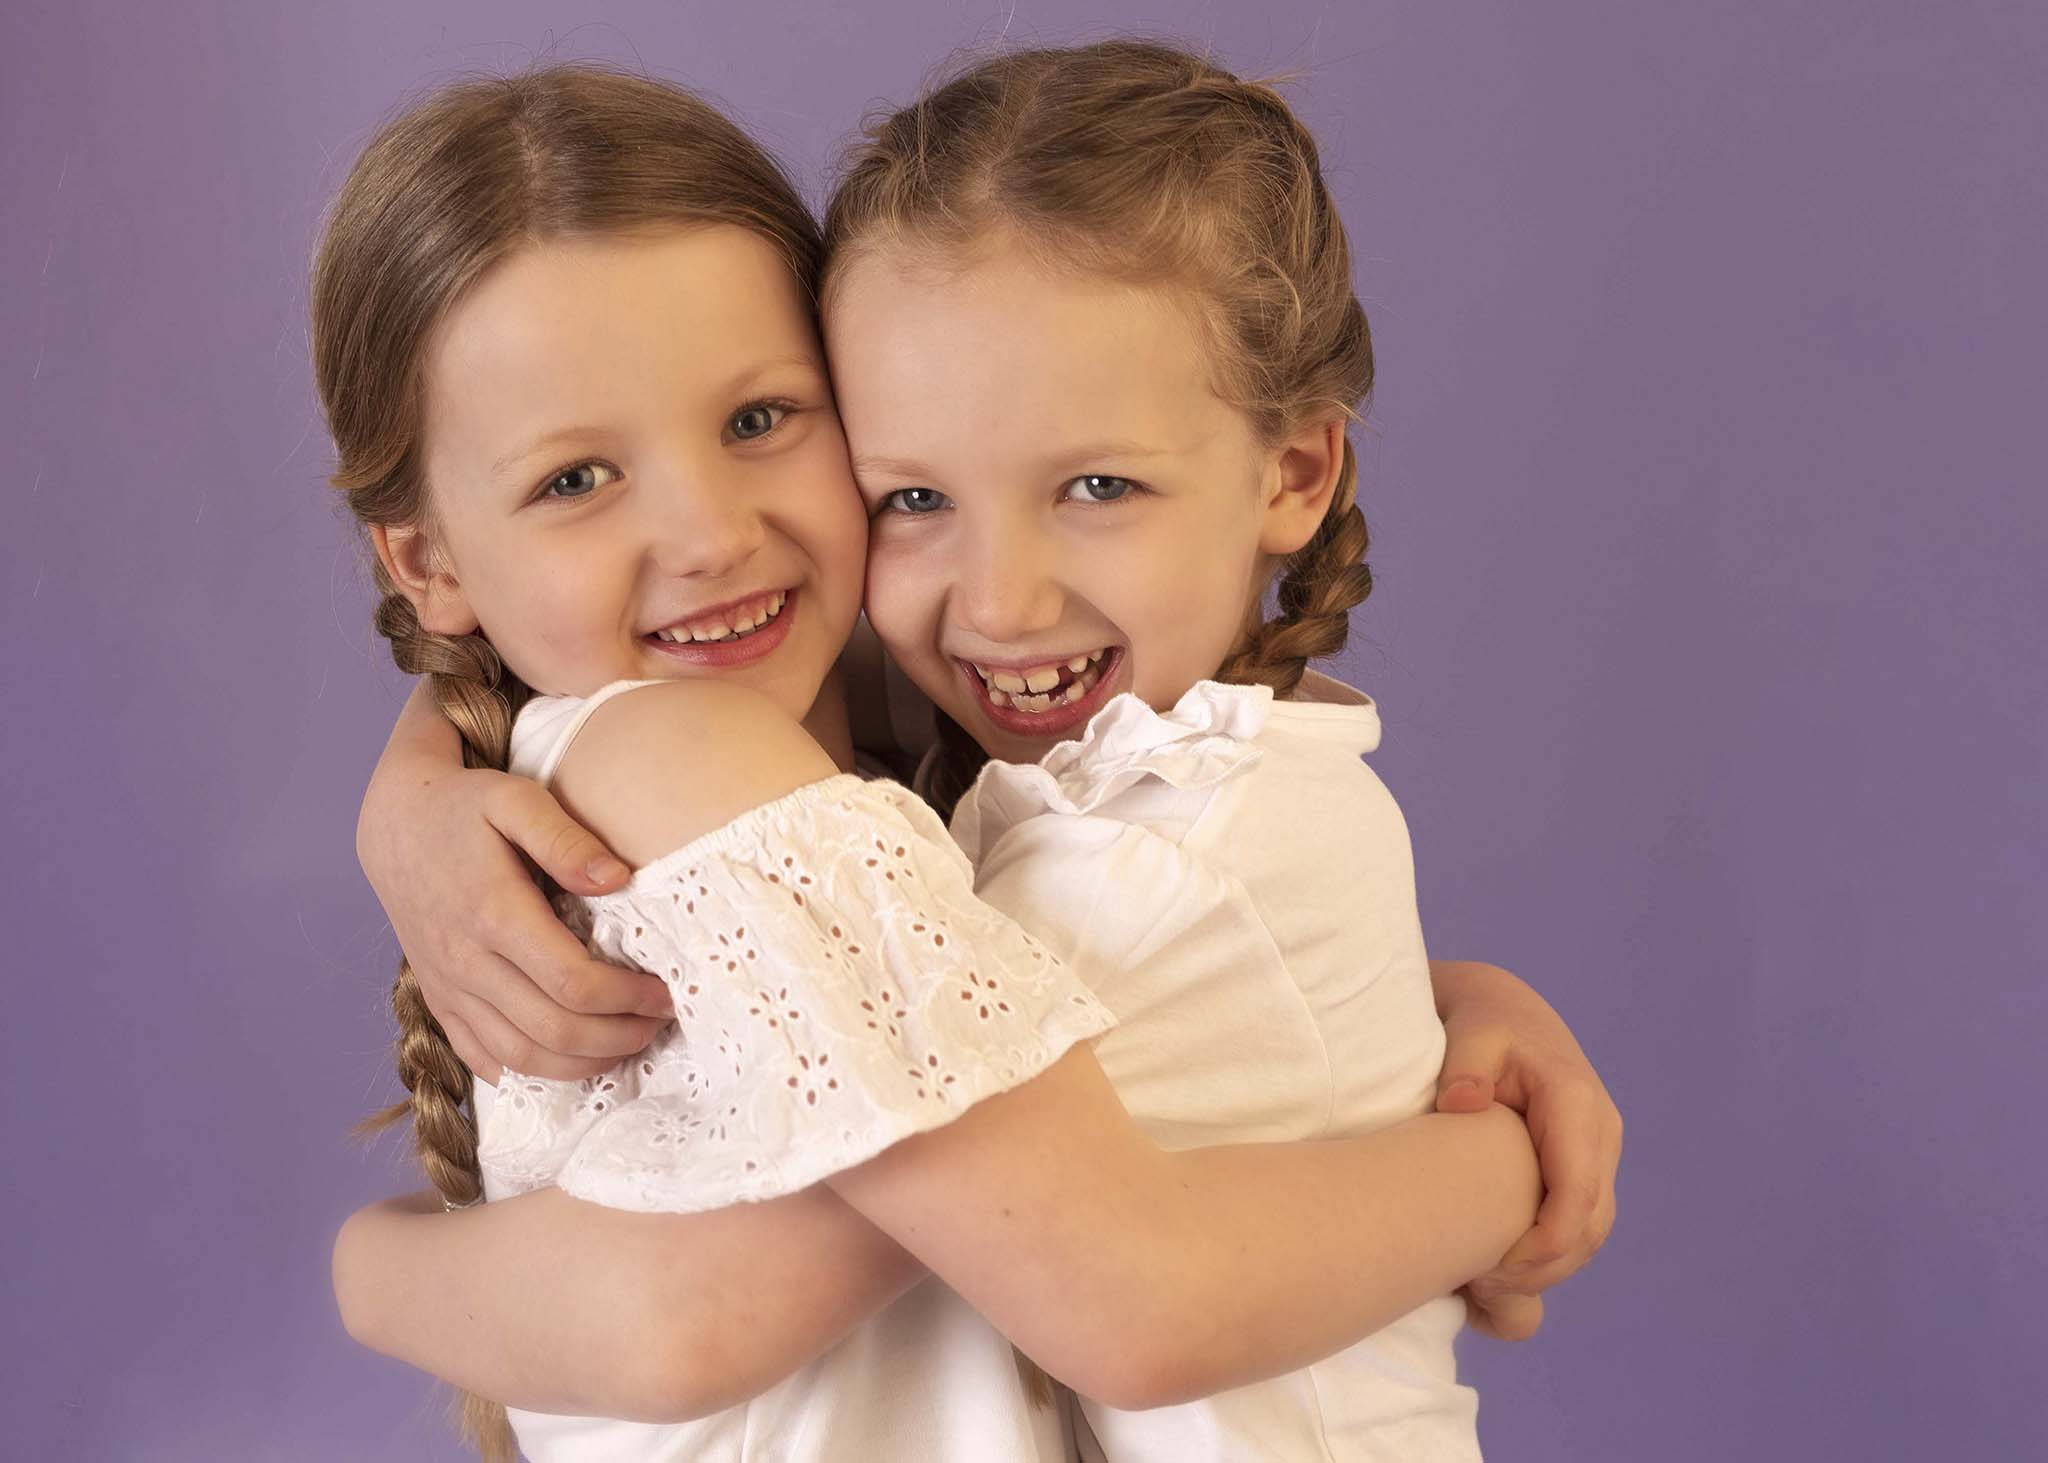 Photograph of children at Photoshoot in Edinburgh studio